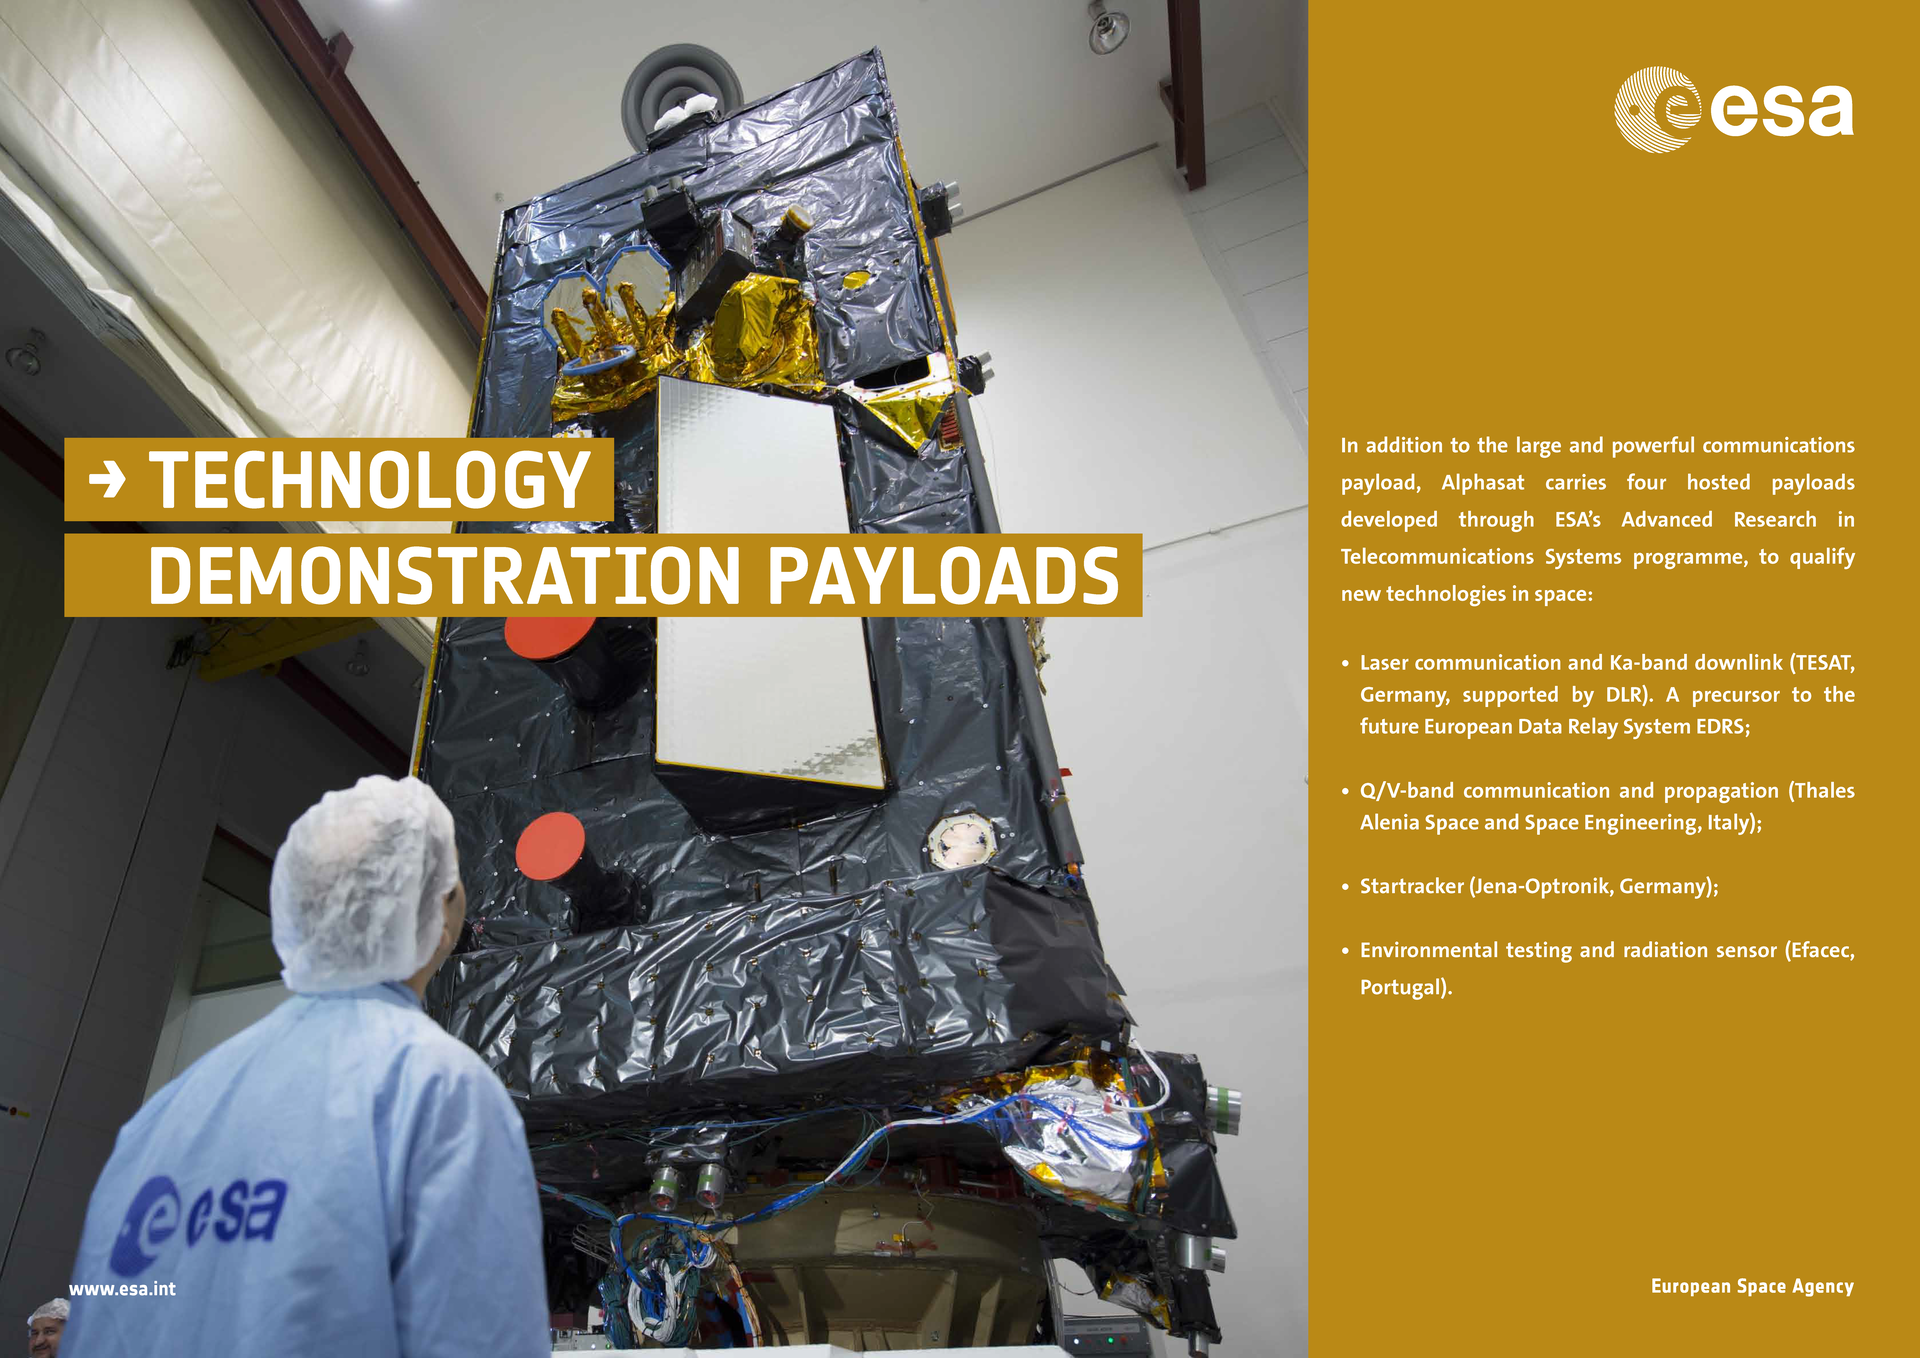 Alphasat Poster - Technology Demonstration Payloads